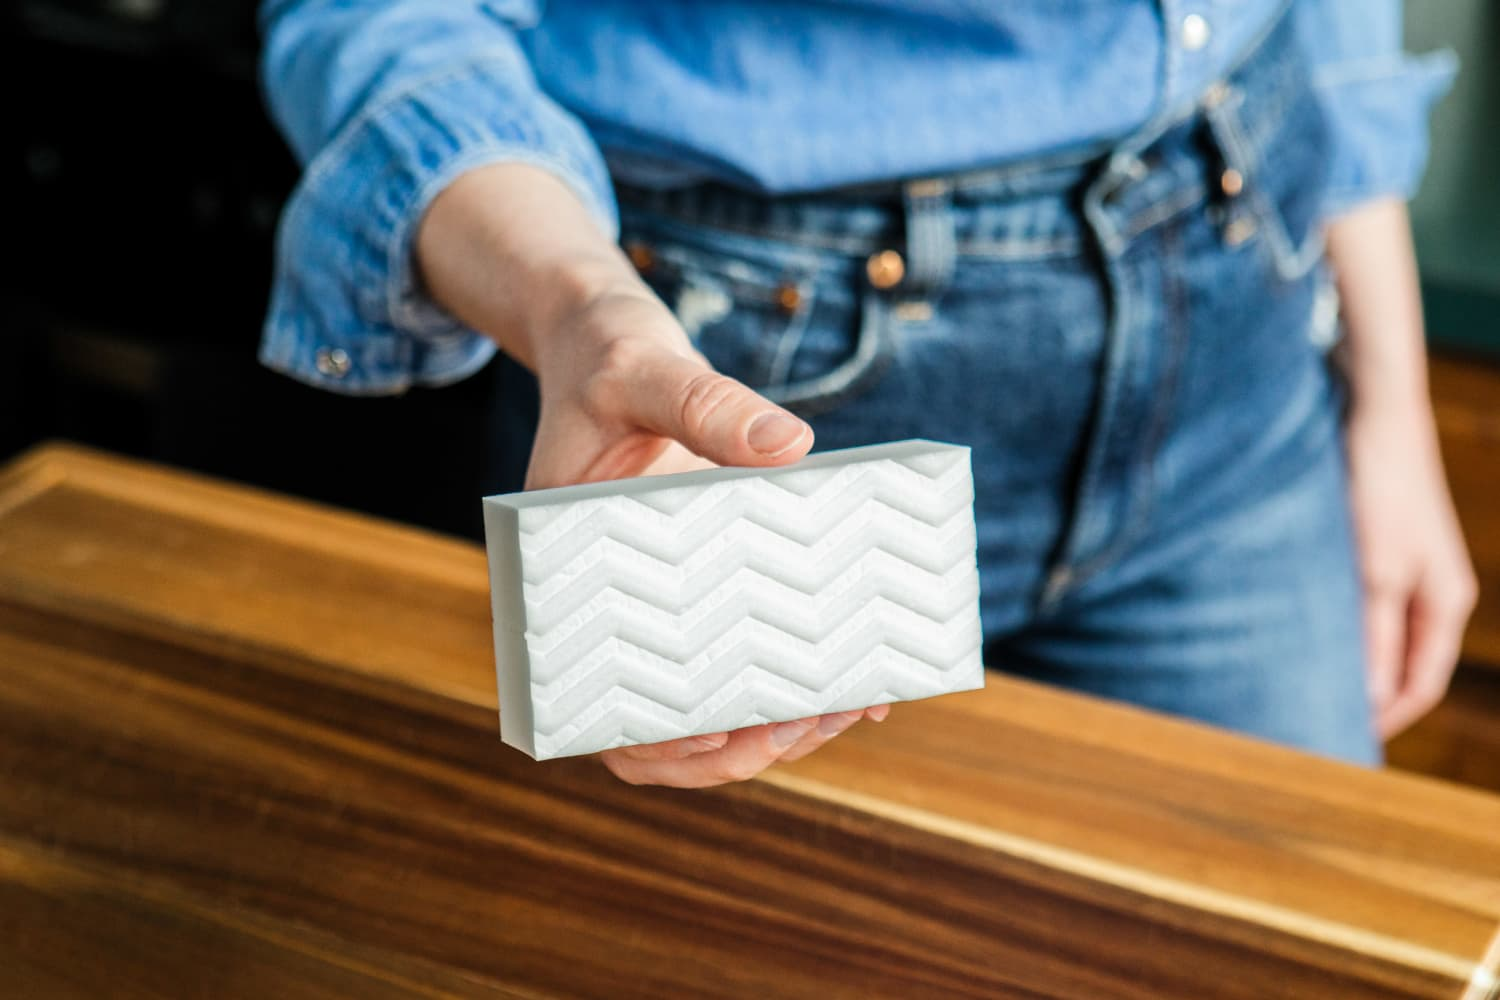 The Magic Eraser Tip You'll Wish You Had Known Years Ago